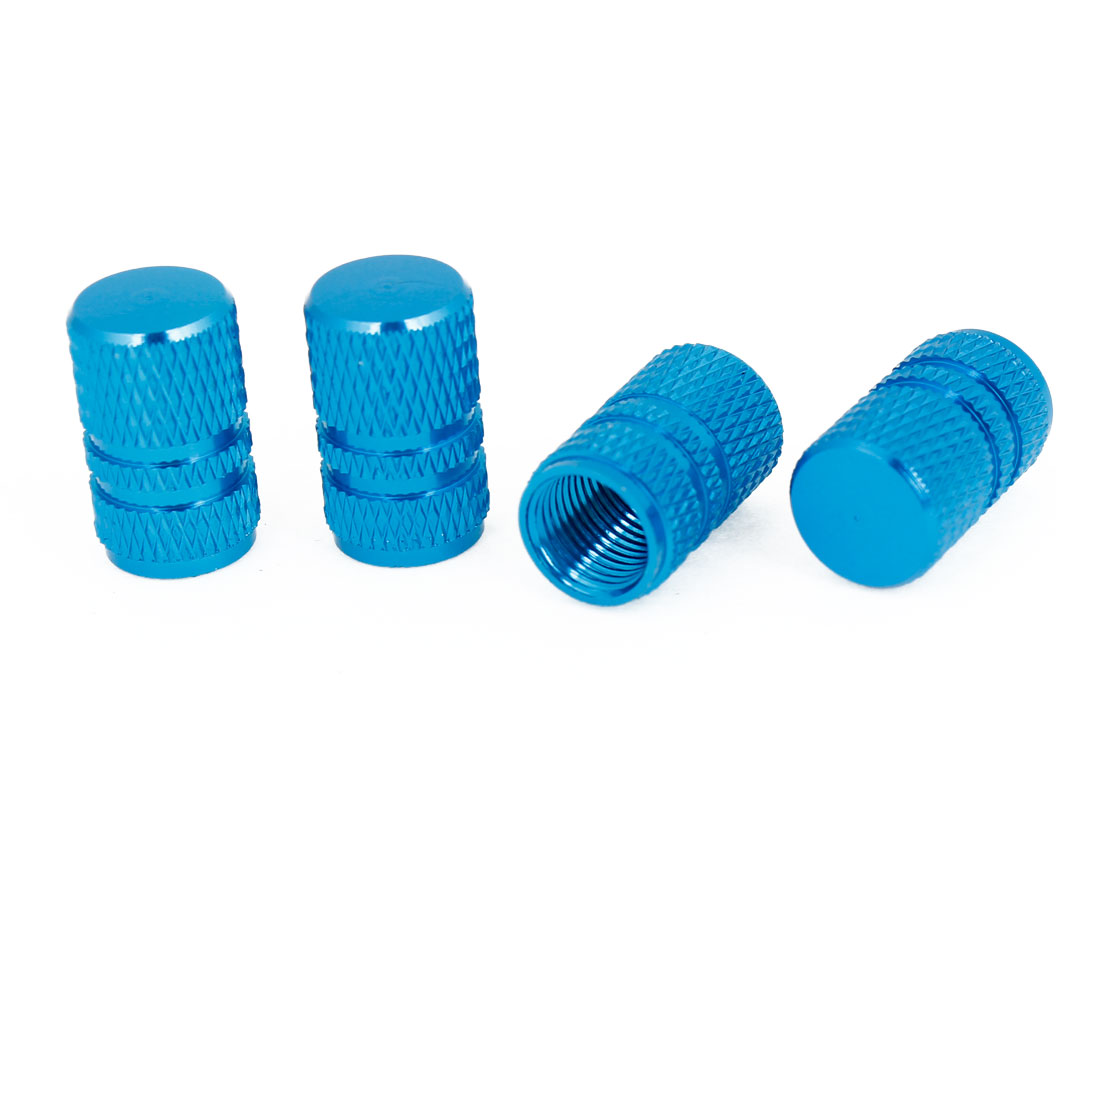 4 Pcs Turquoise Metal Tire Tyre Valve Cap Cover for Auto